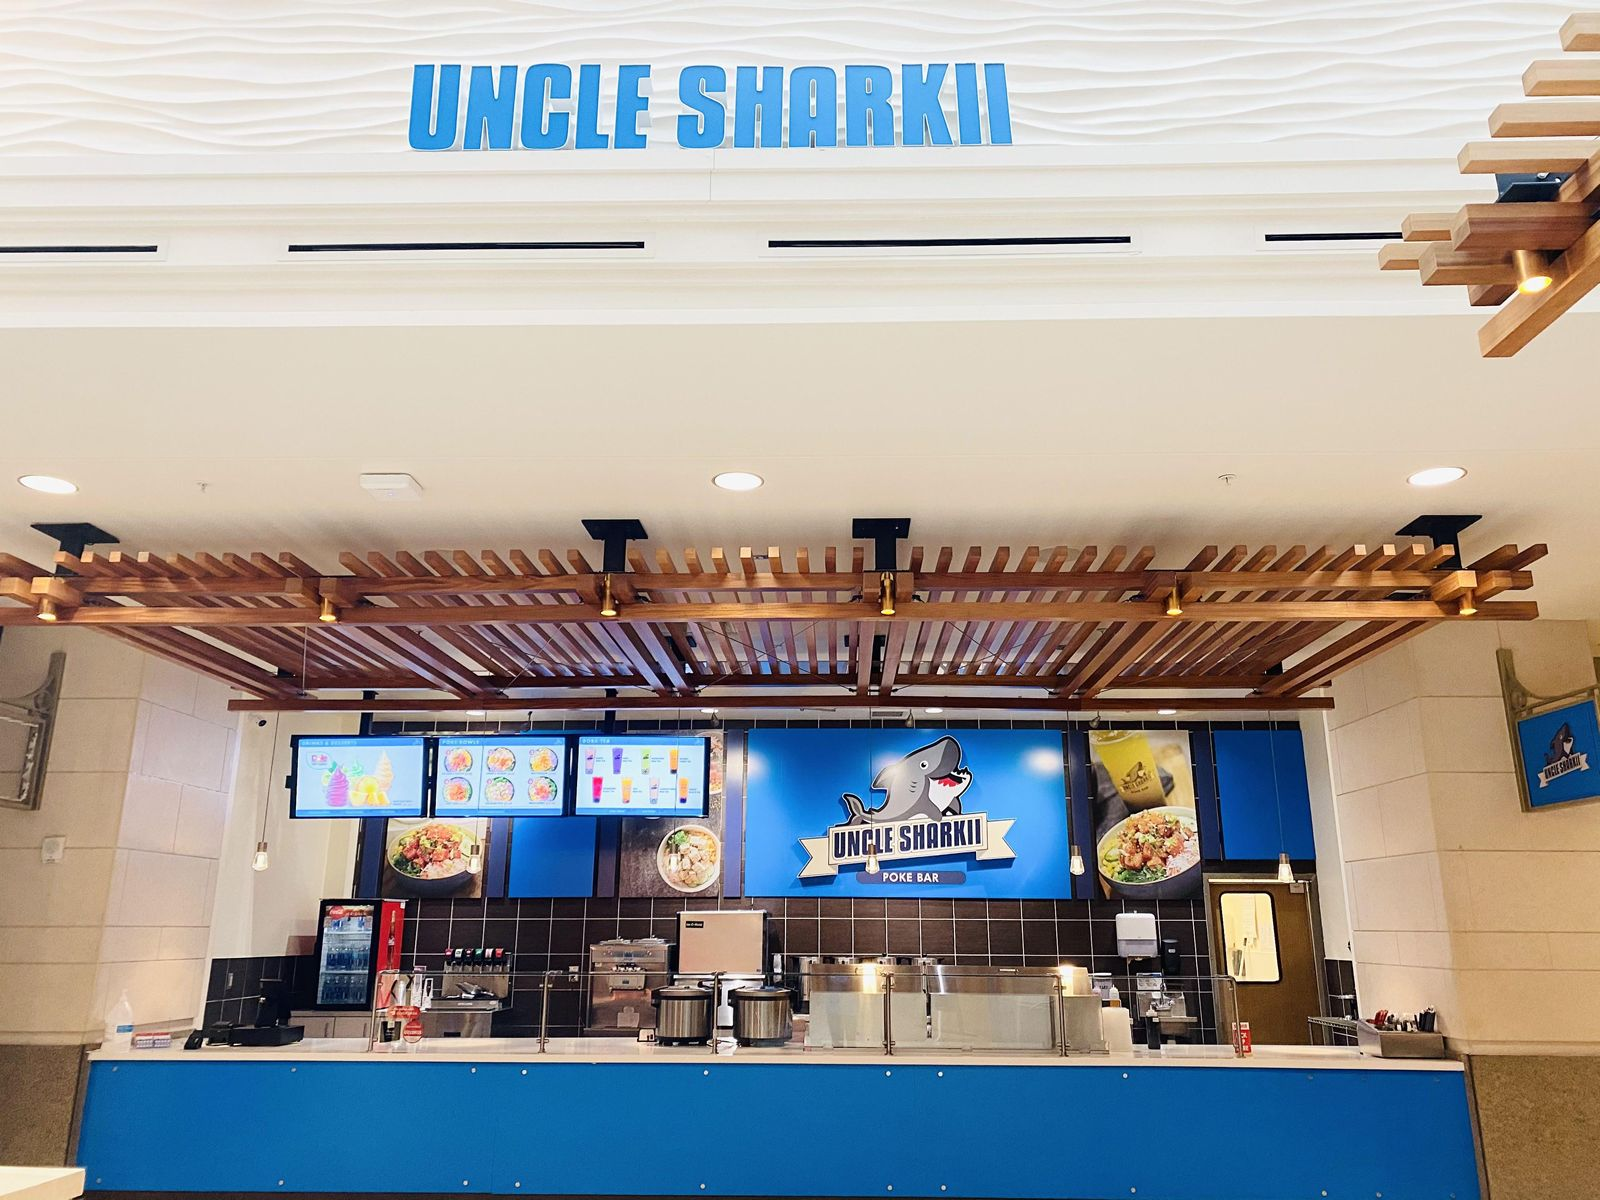 Uncle Sharkii Makes a Big Catch with Multi-Unit Deal